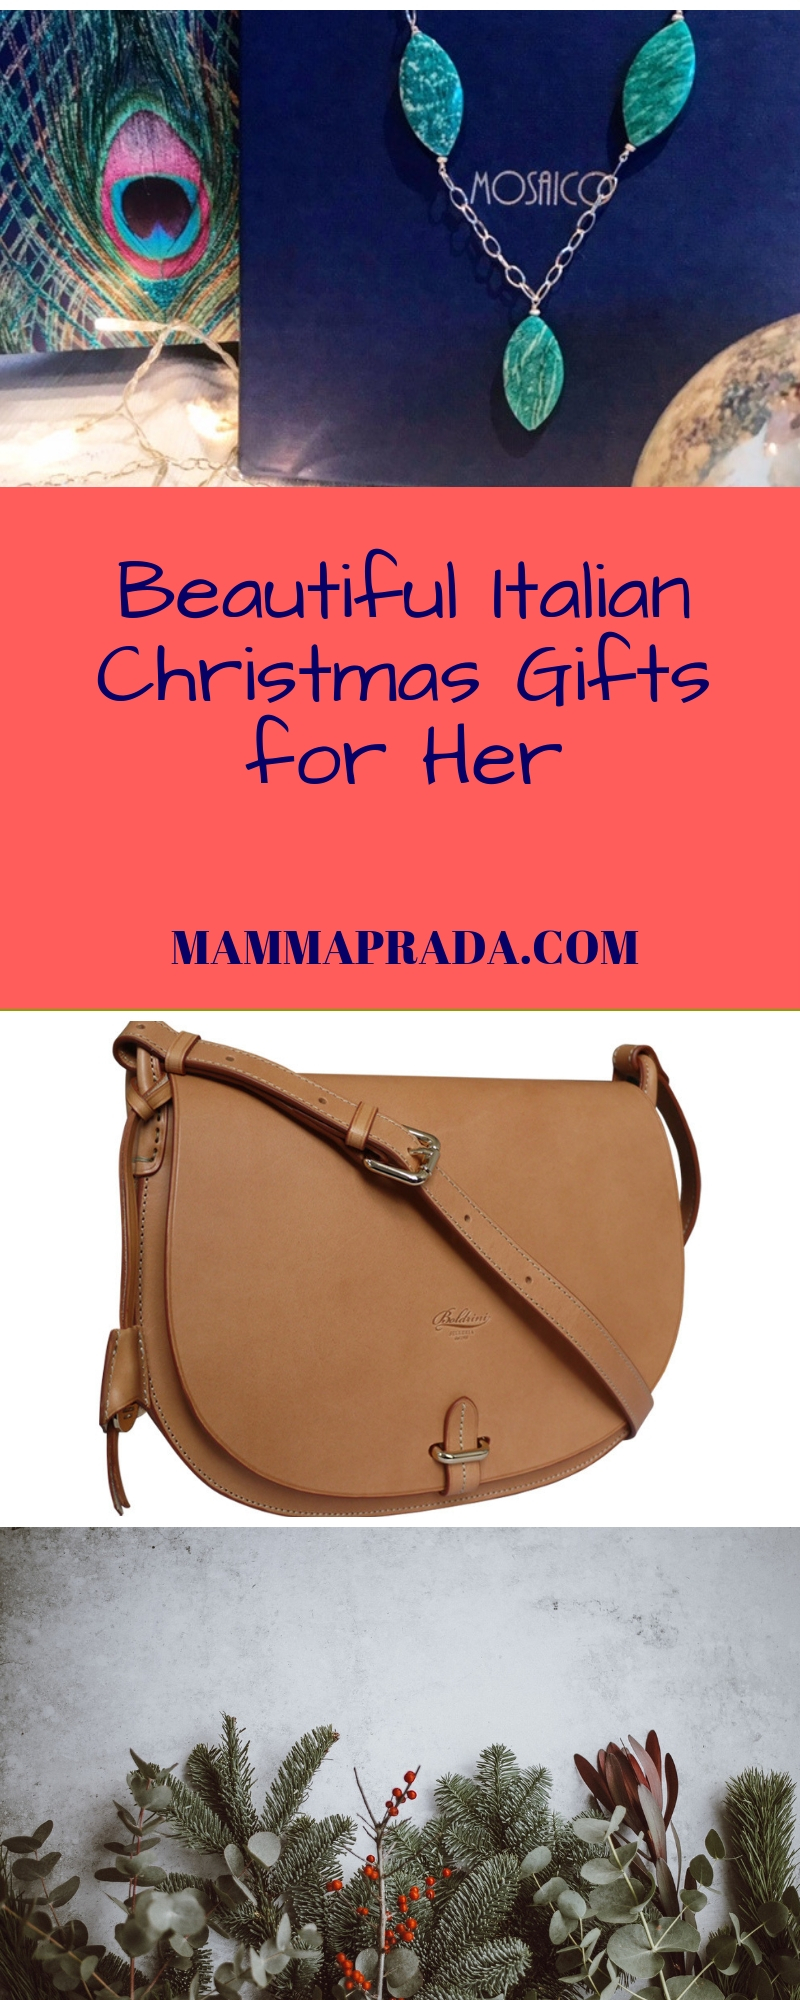 938ba167a046 Italian Christmas gifts for the Woman who loves a surprise!